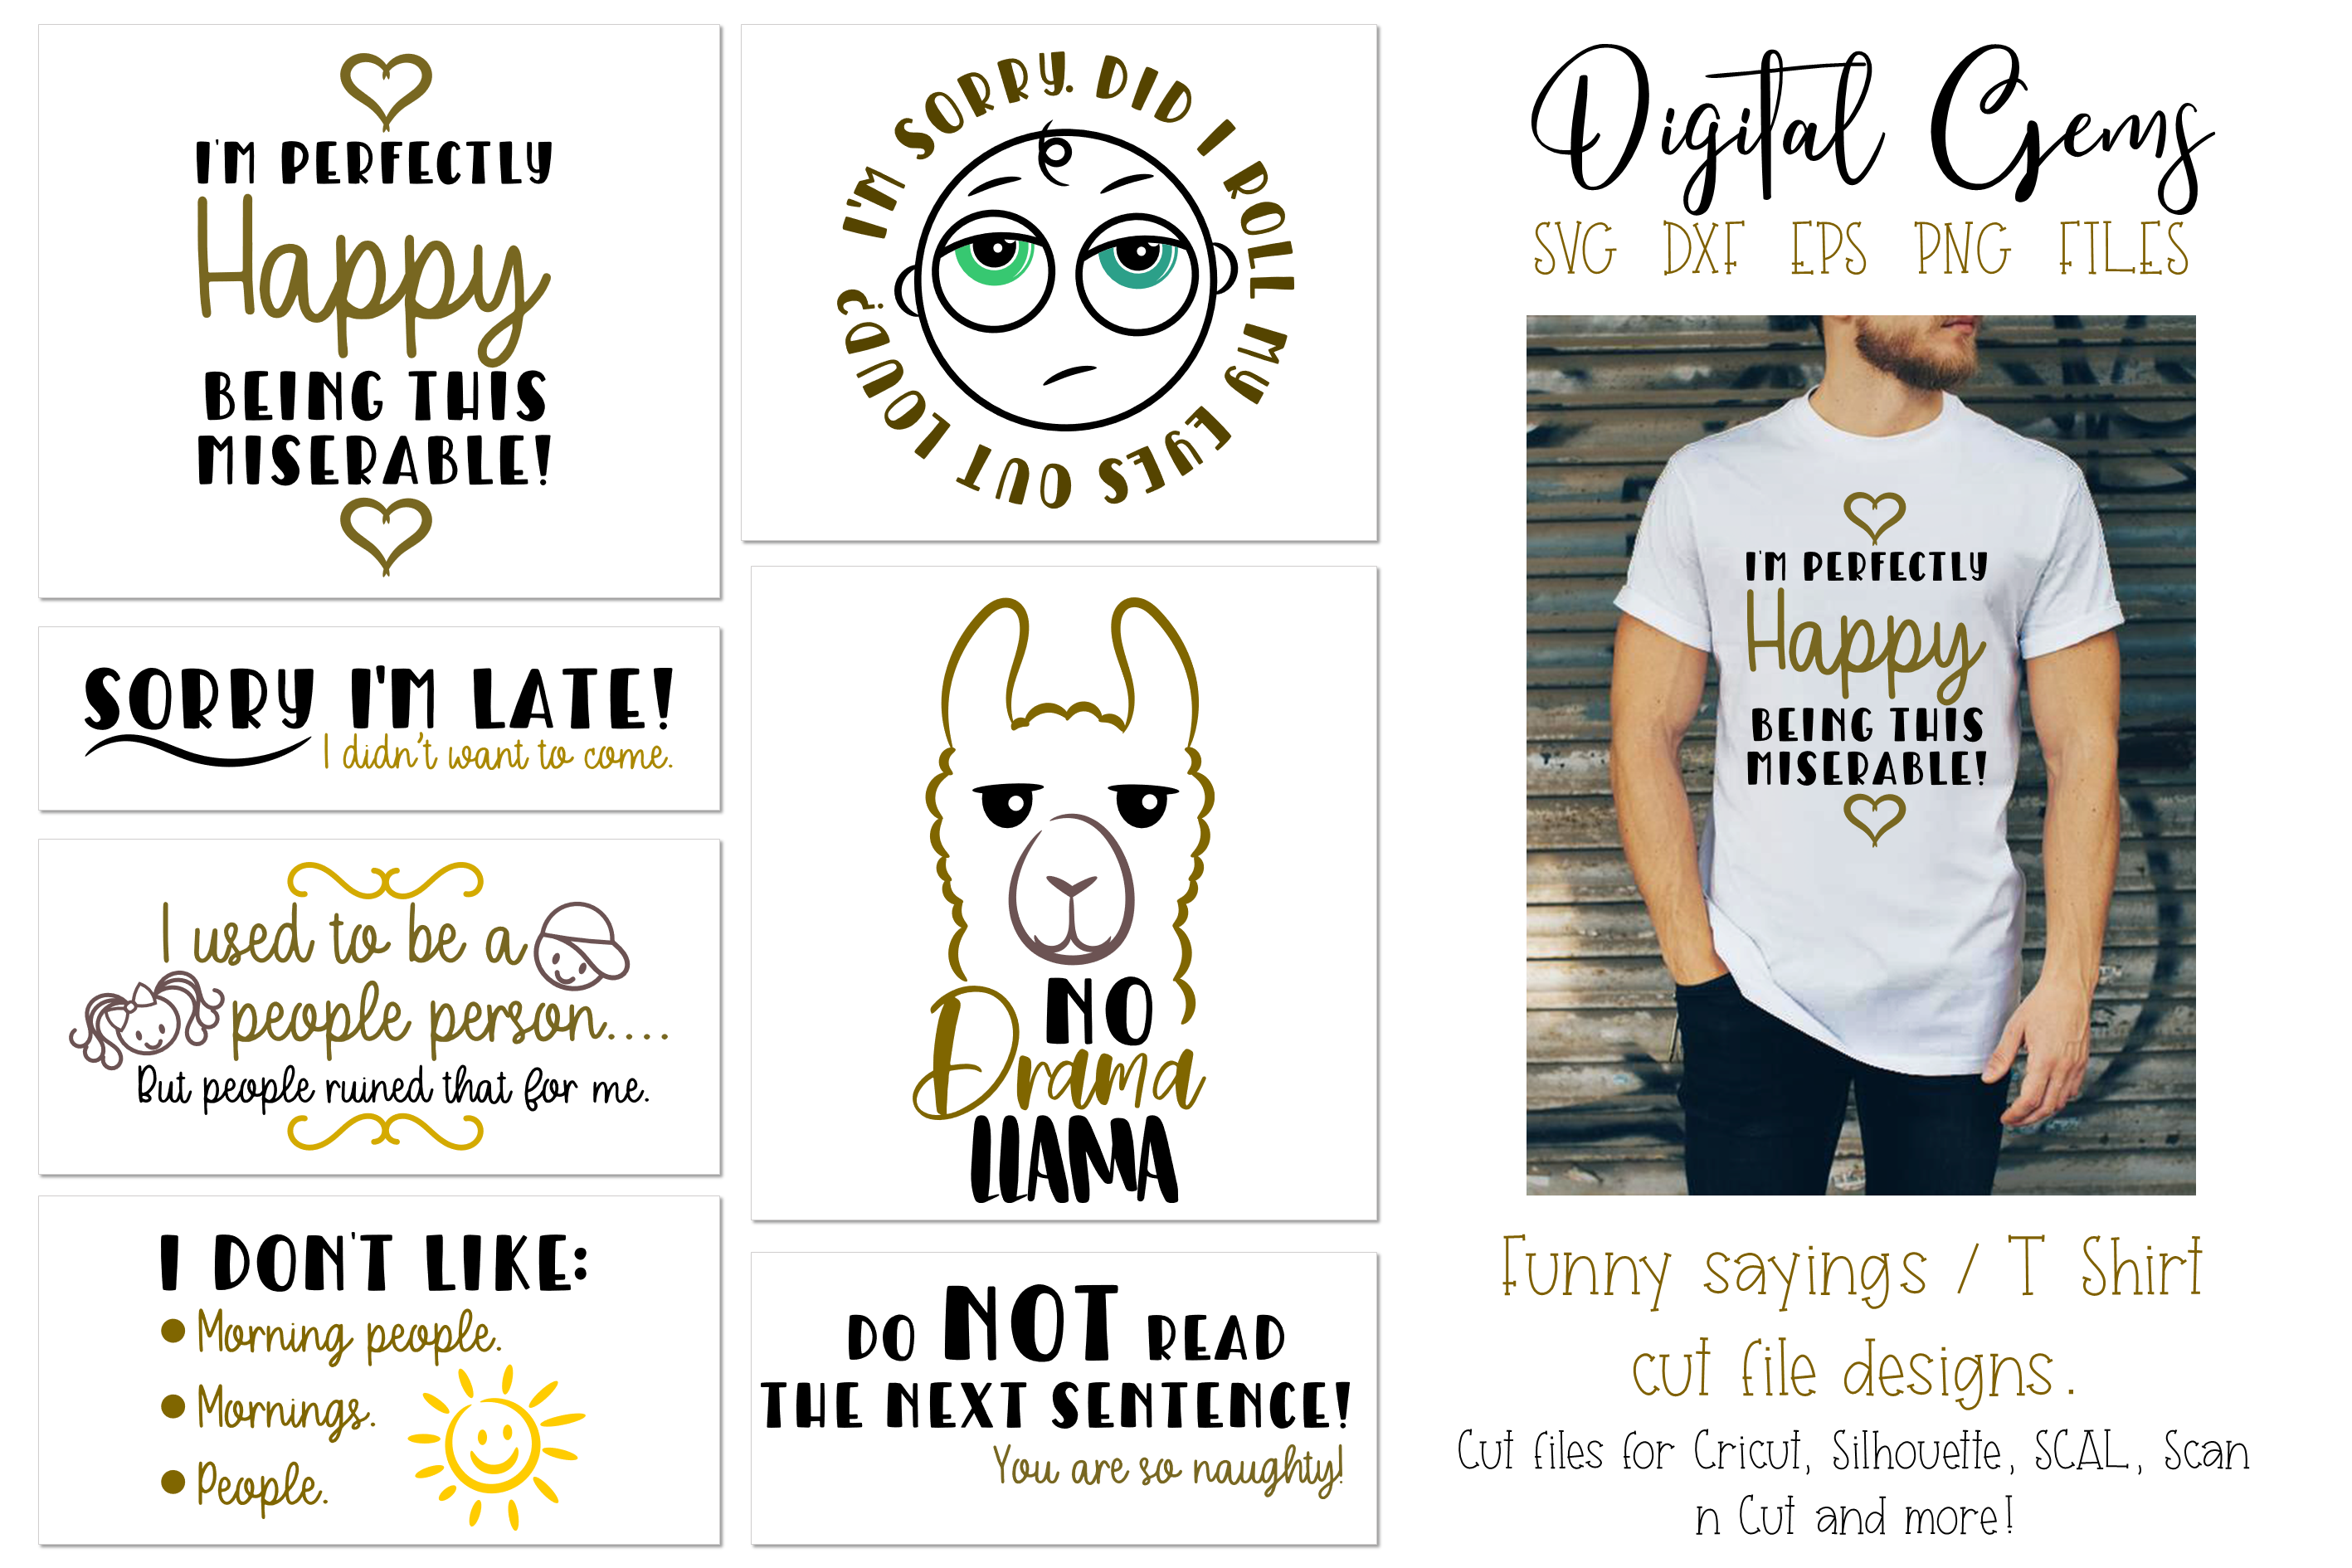 Funny Quotes And Sayings T Shirt Cut File Designs By Digital Gems